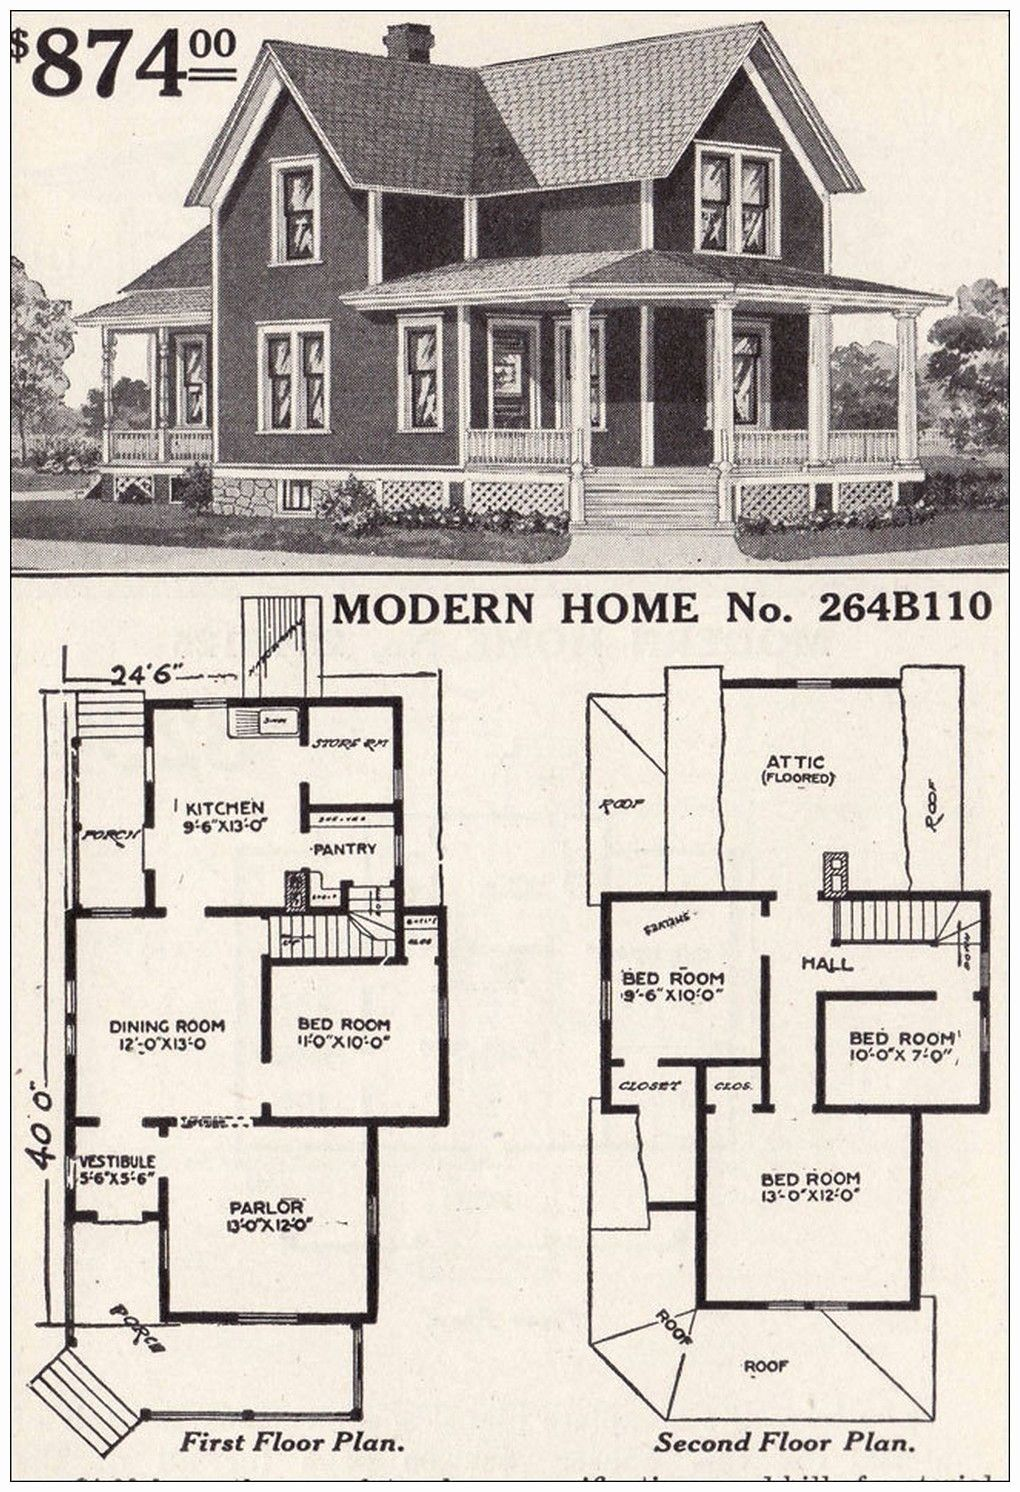 Old Farm Style House Plans Inspirational 1900 Farmhouse Style House Plans In 2020 Victorian House Plans Farmhouse Floor Plans Southern House Plans